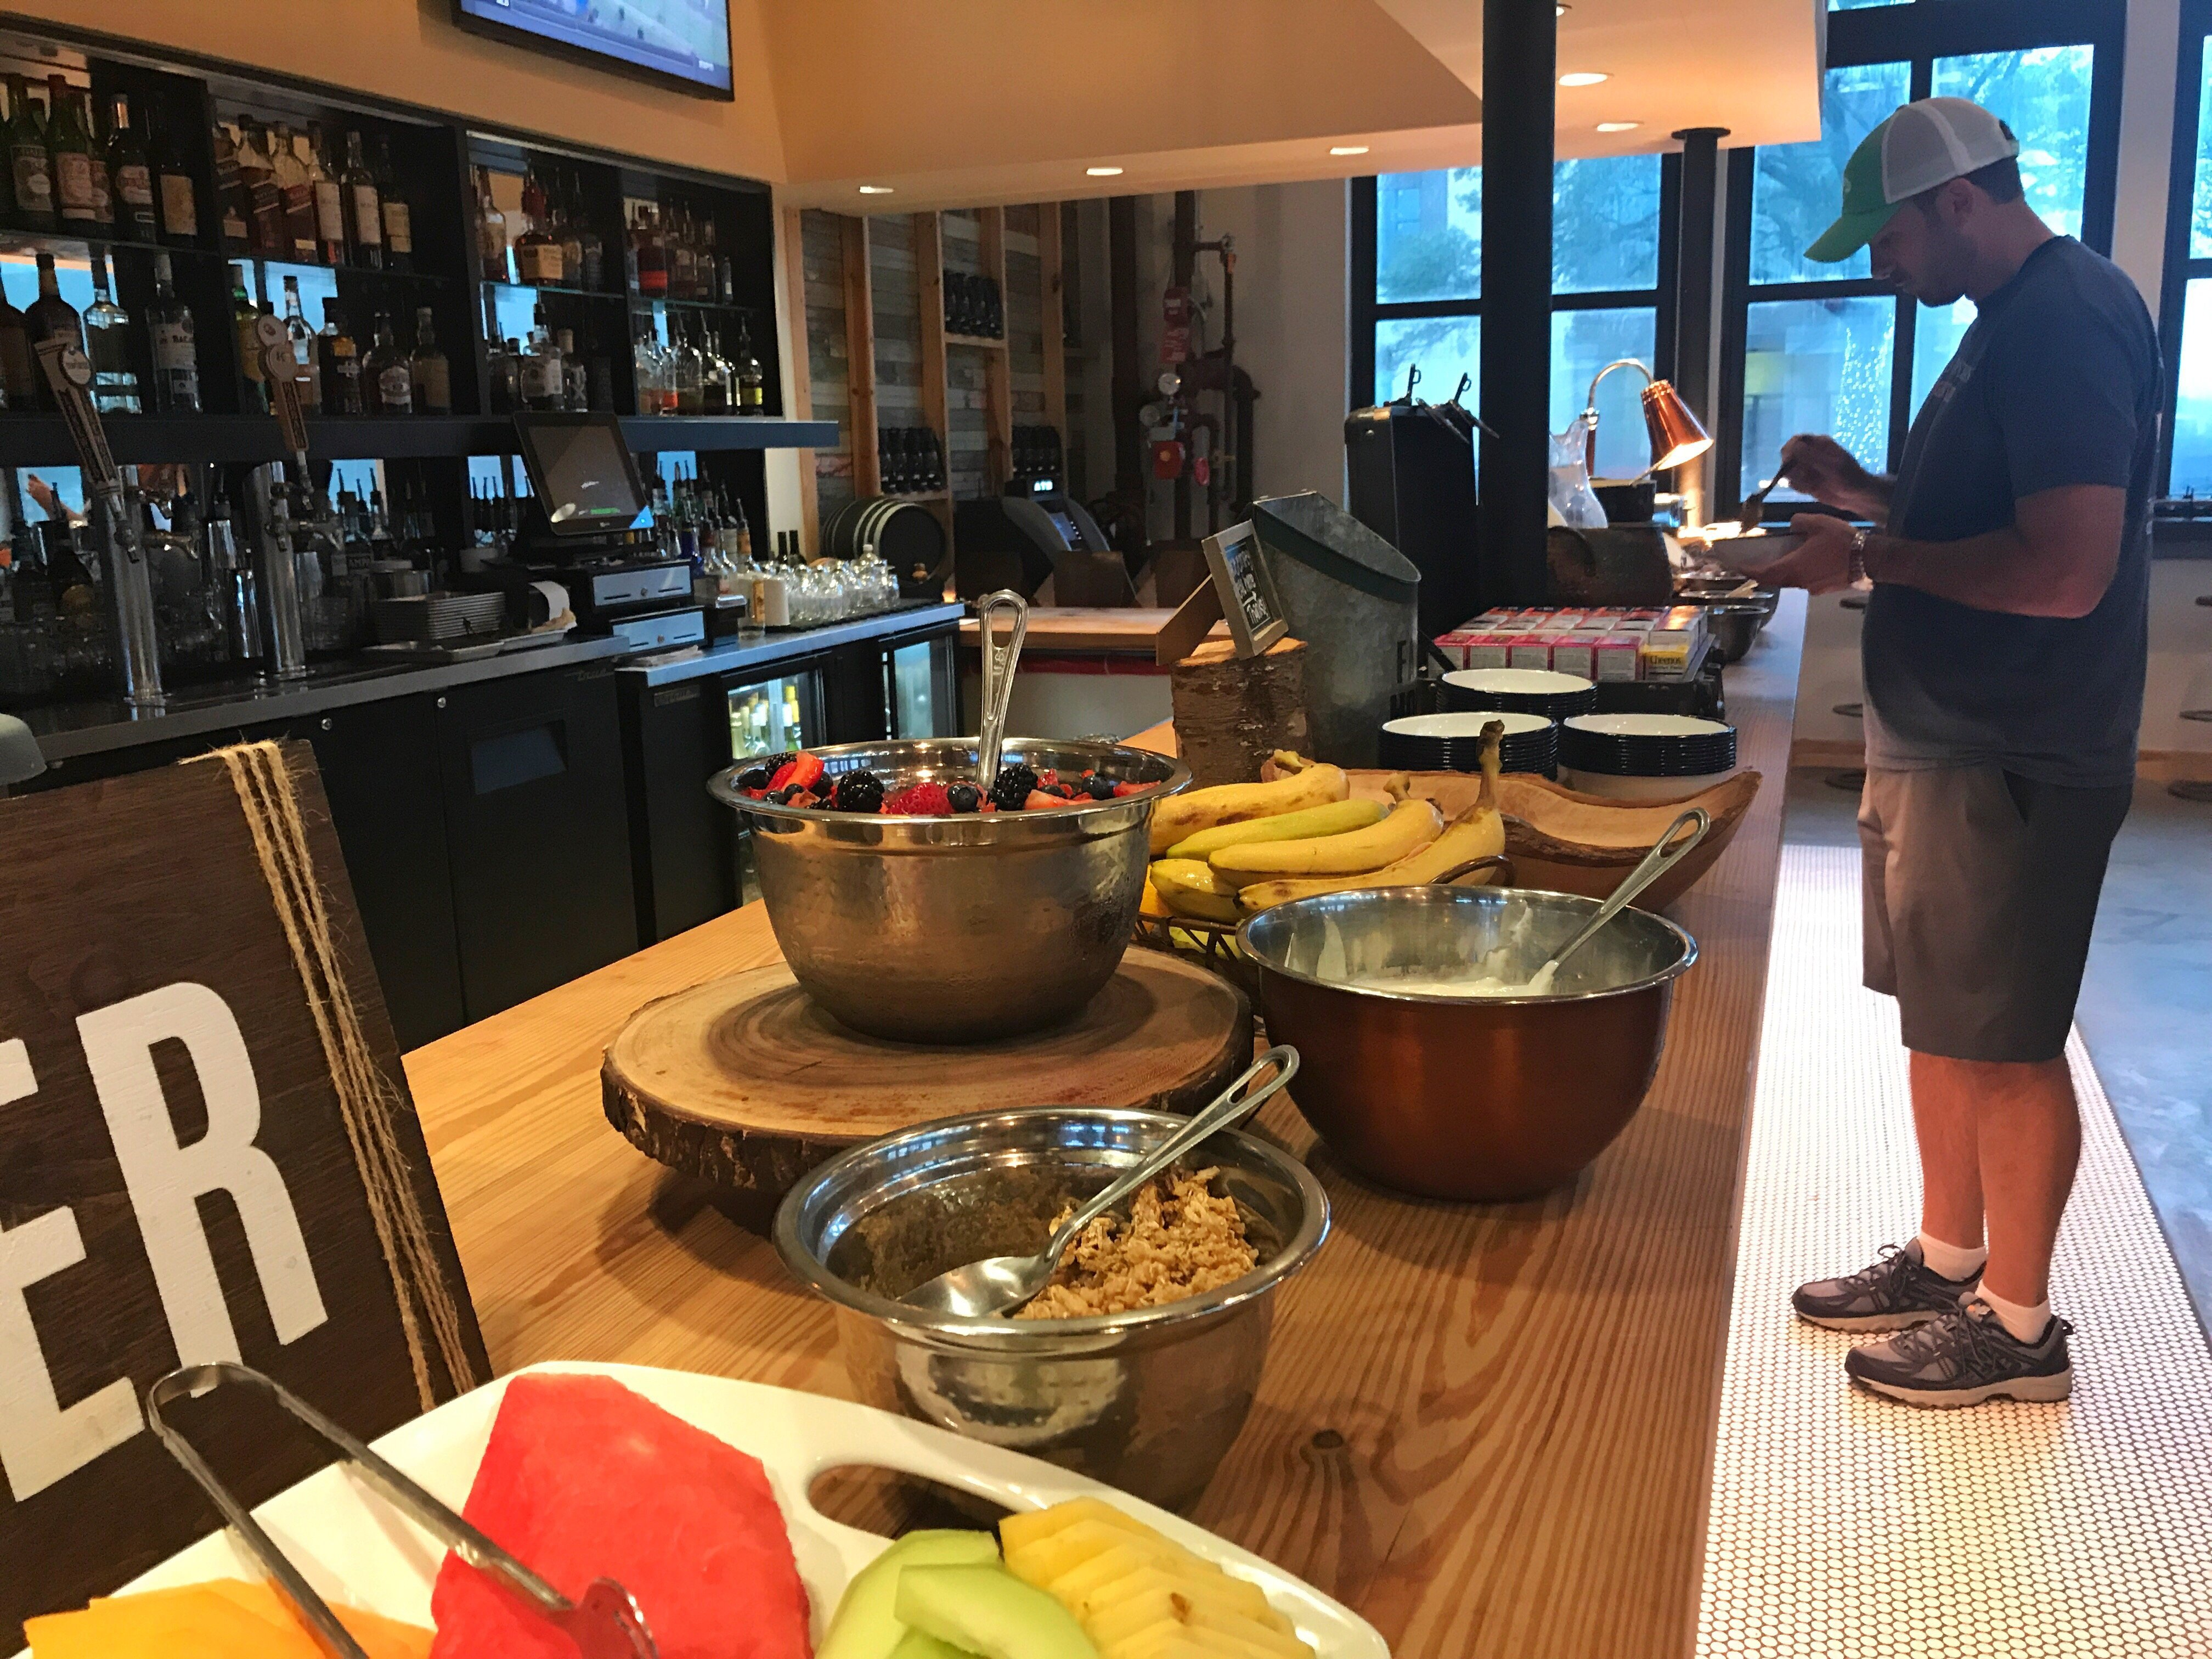 Breakfast at Cavalry Court's The Canteen